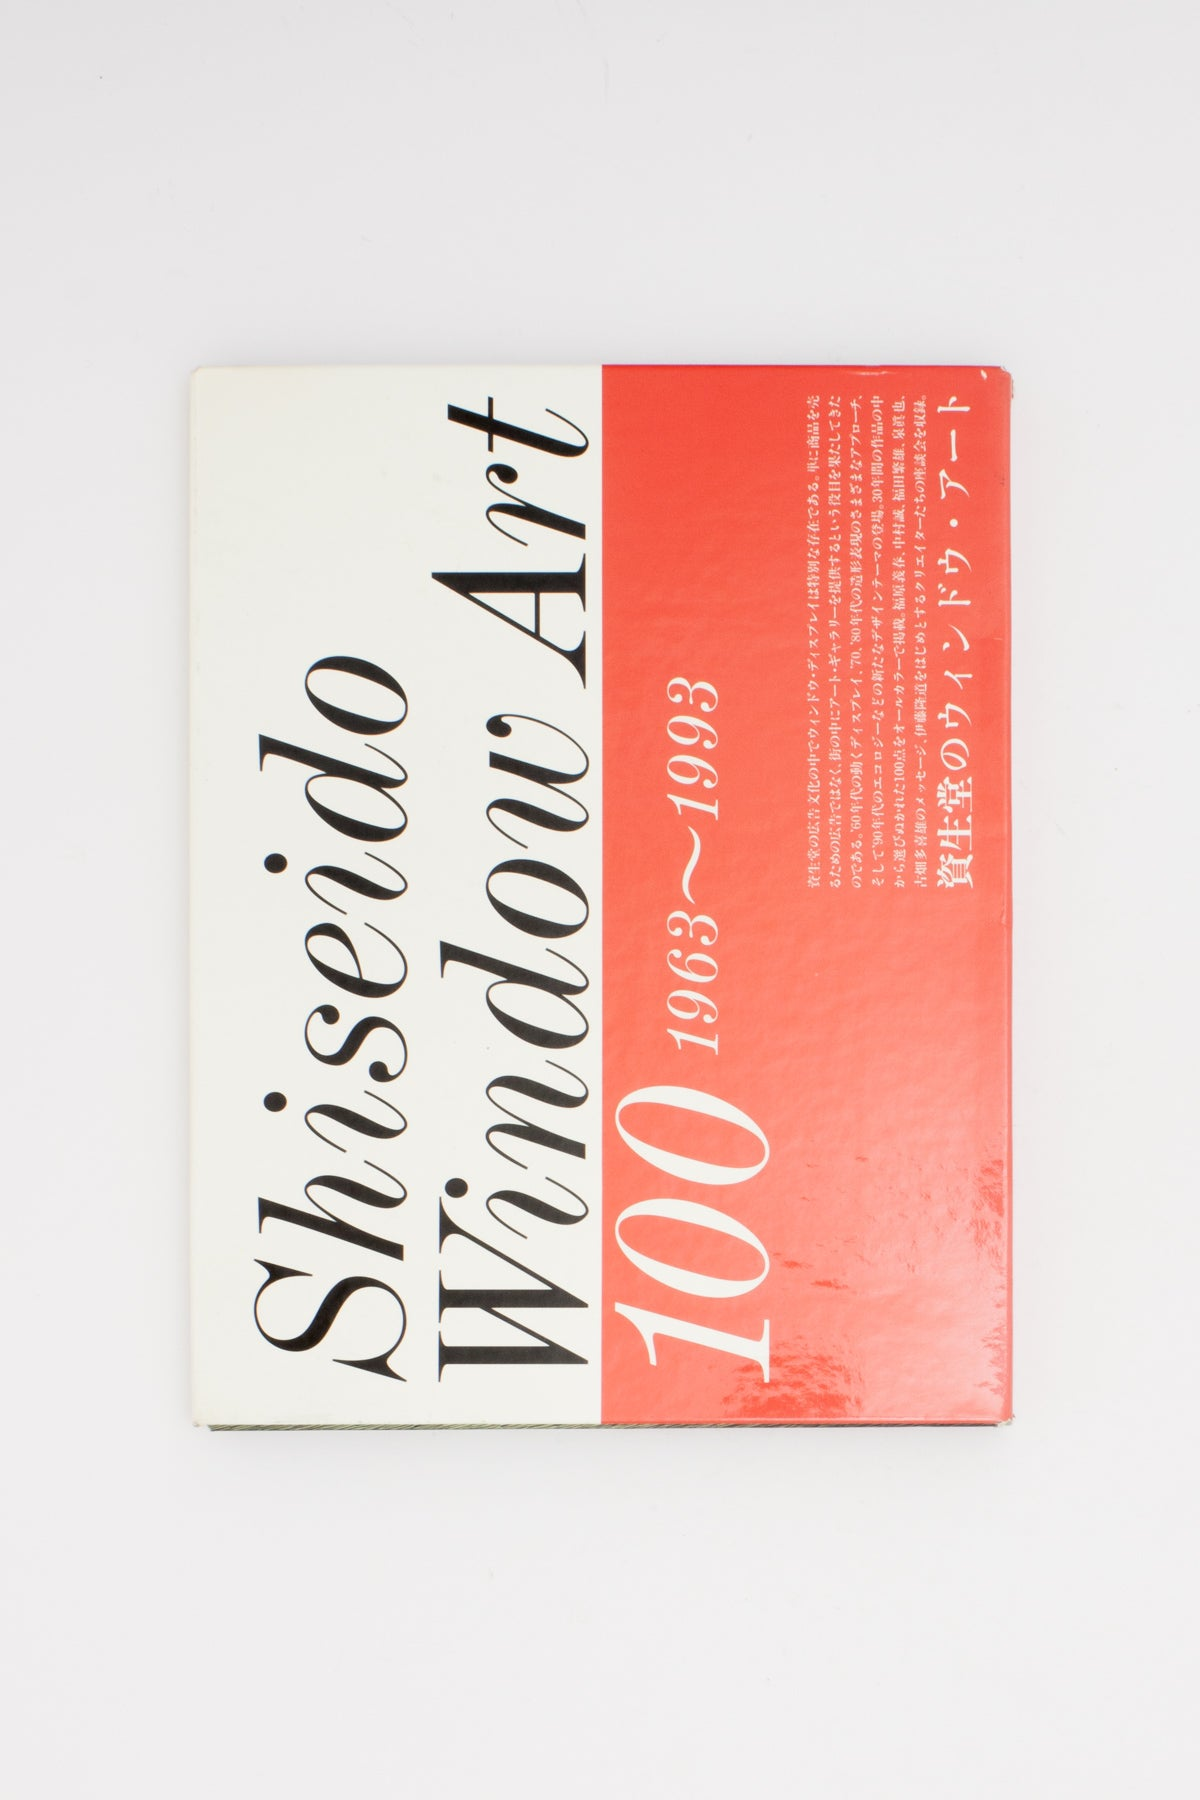 Shiseido Window Art 100 1963-1993